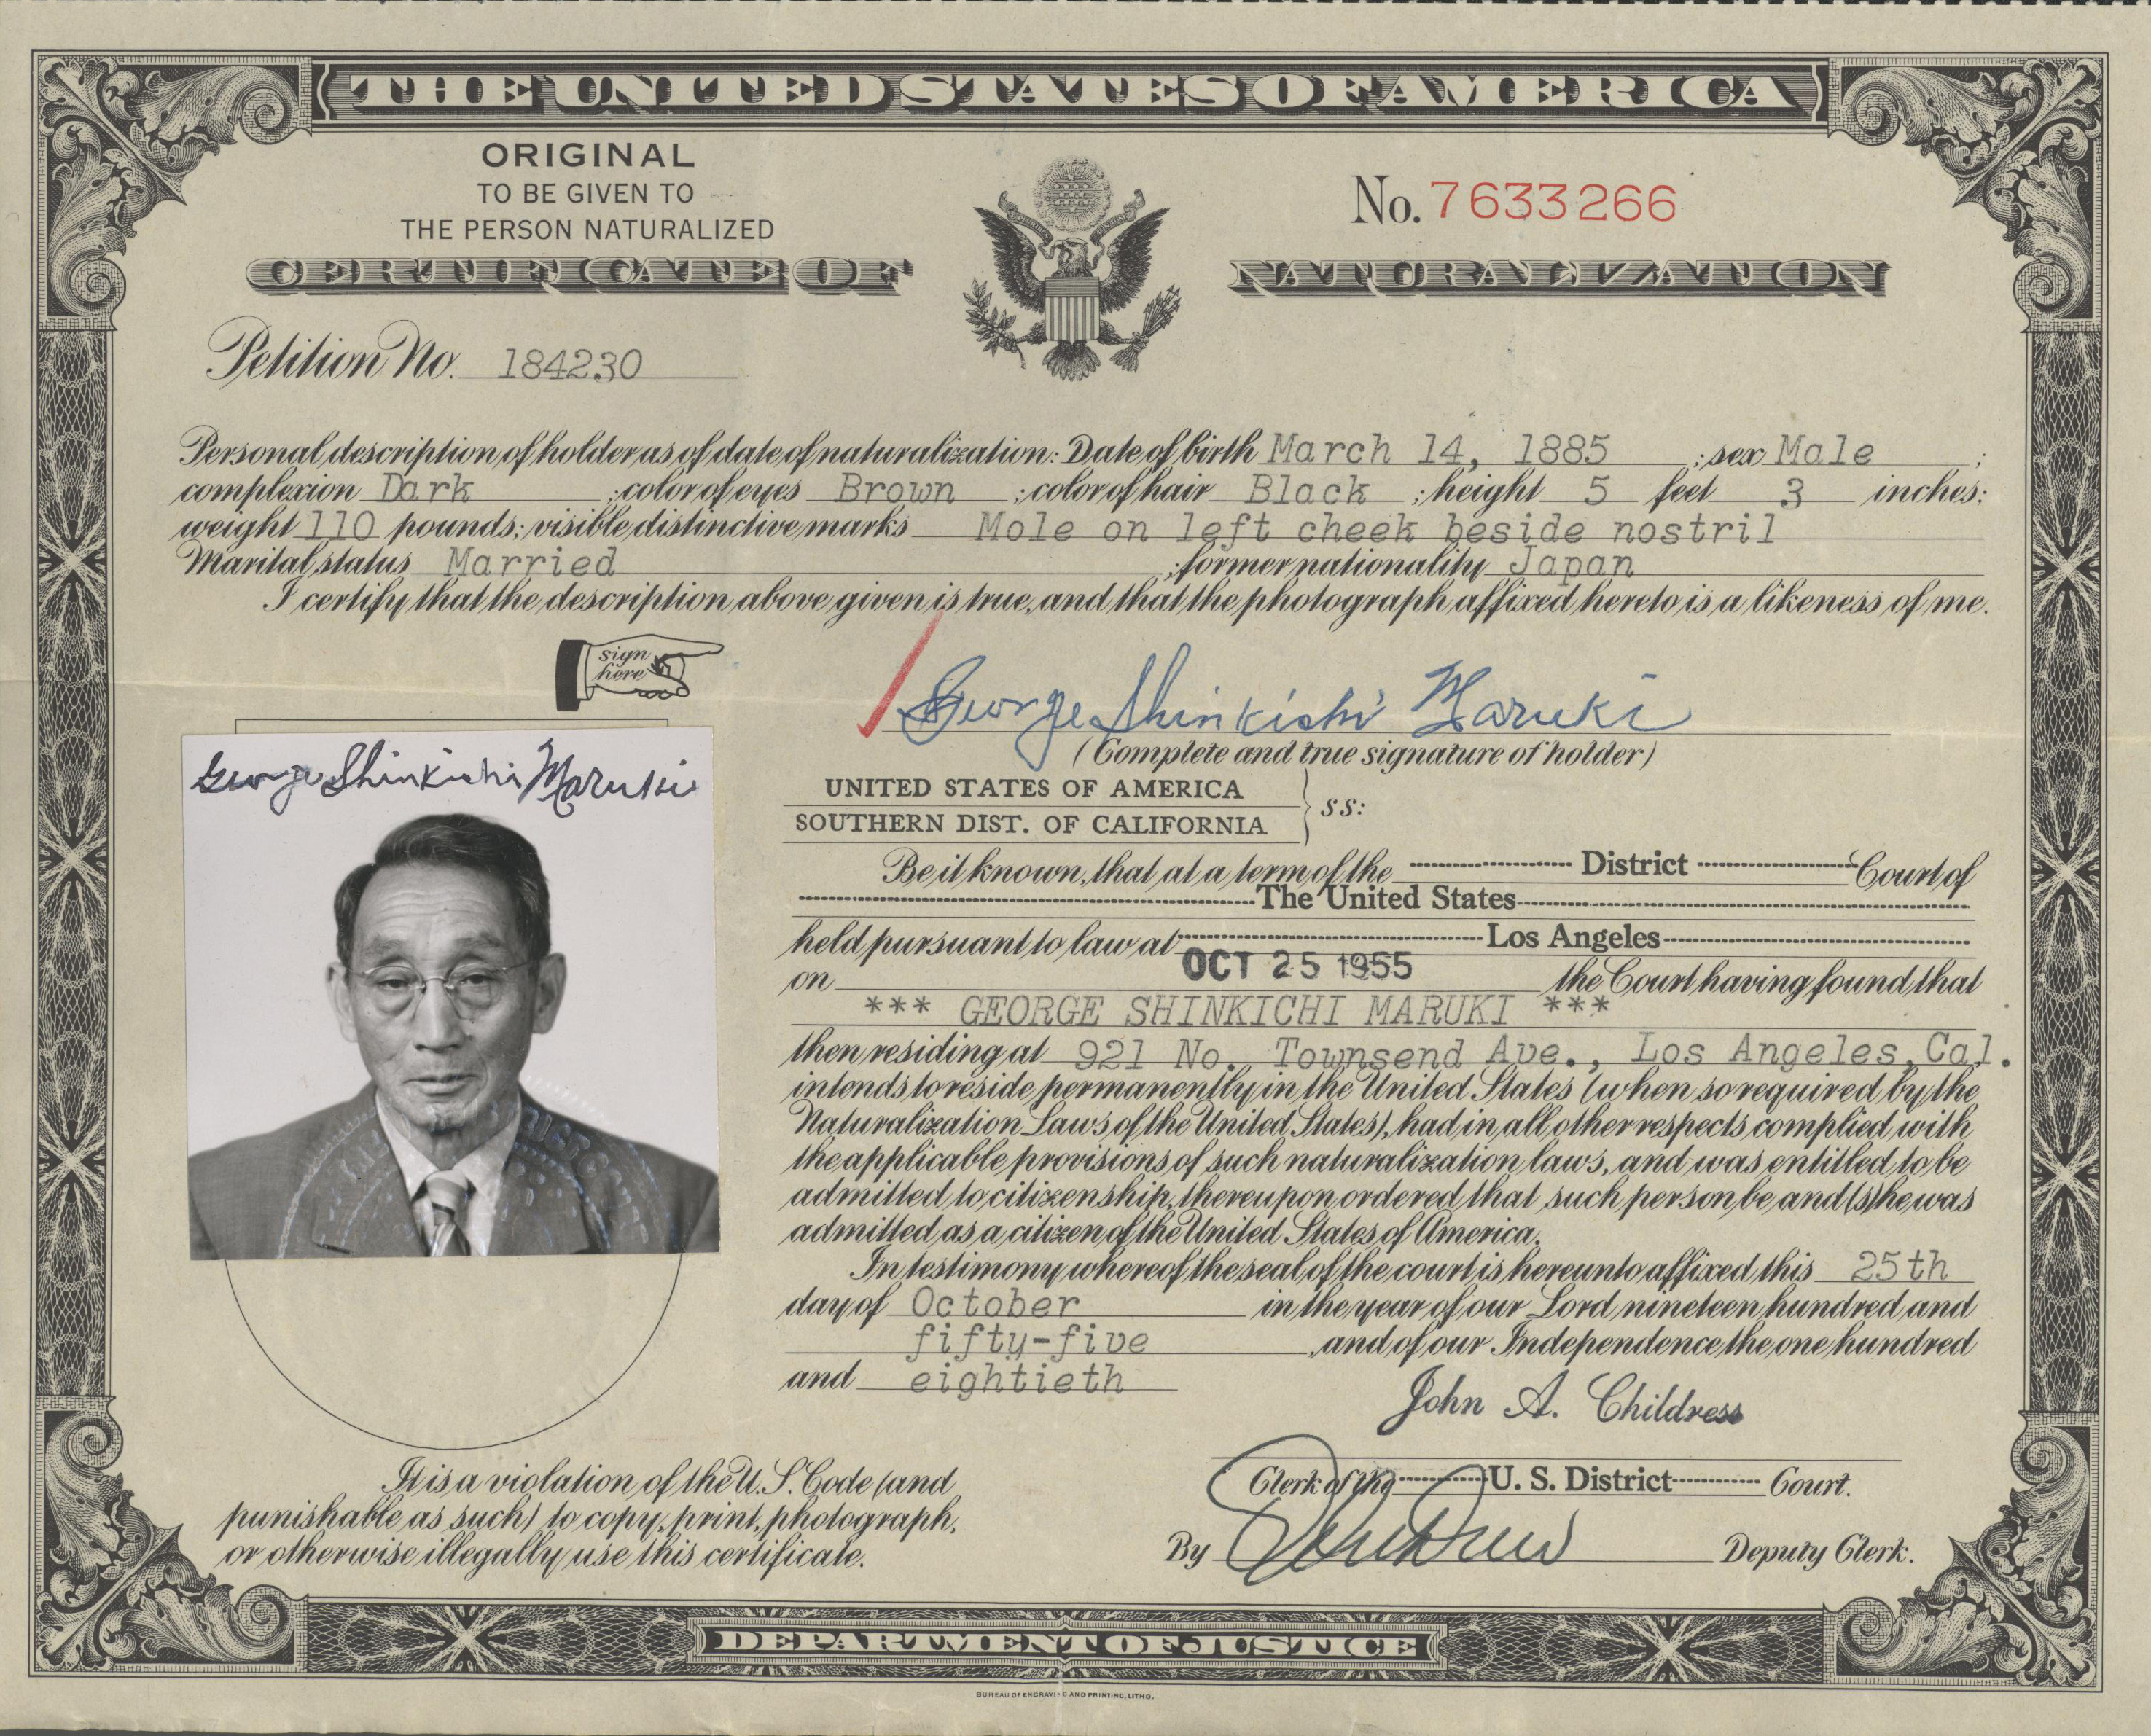 Ddr manz 10 160 naturalization certificate for shinkichi maruki naturalization certificate for shinkichi maruki download large 8034 kb 1betcityfo Choice Image